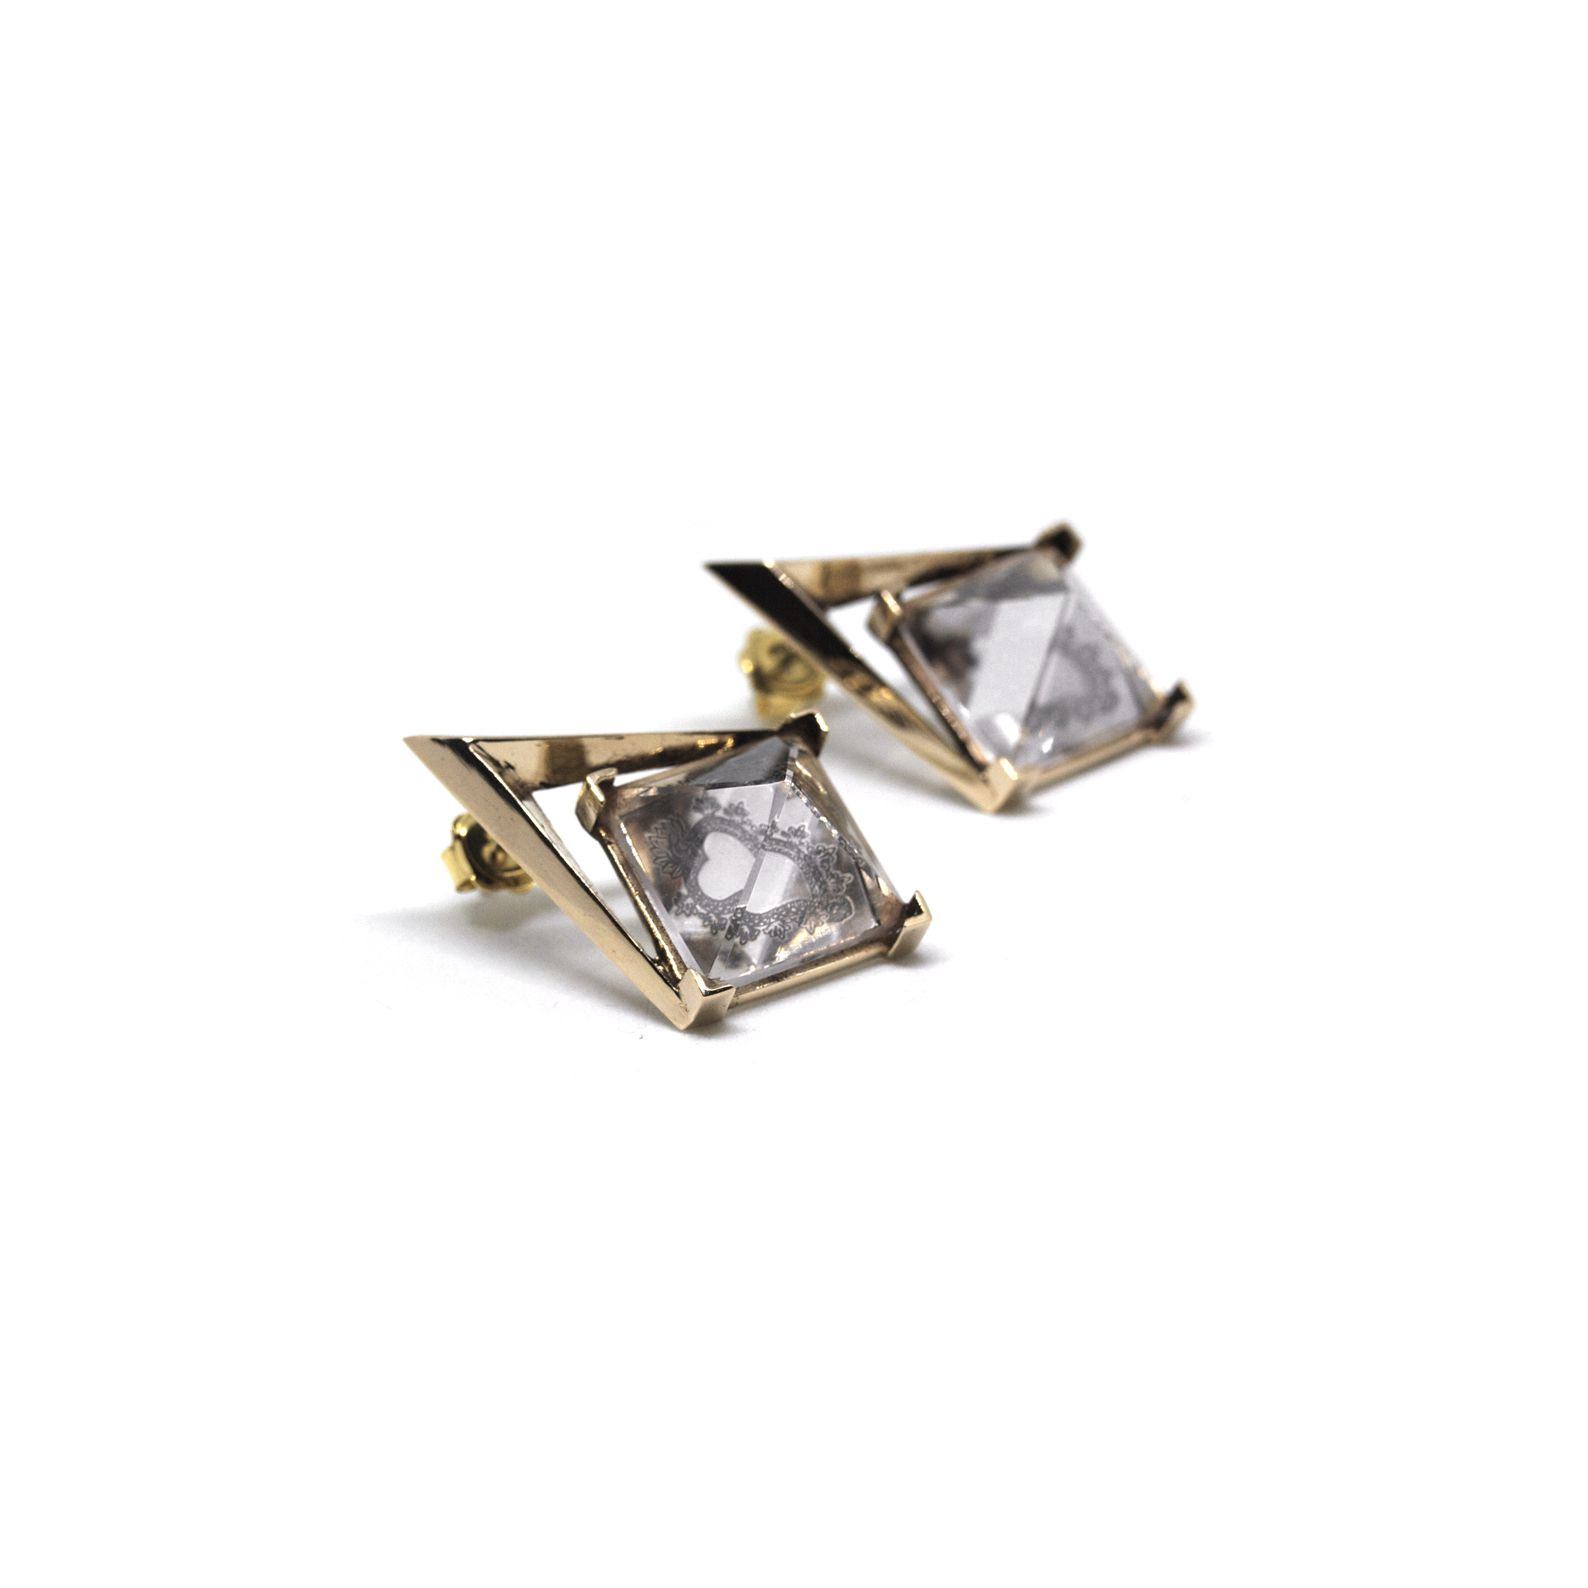 'Entropia' earrings Earrings in bronze with pyramid